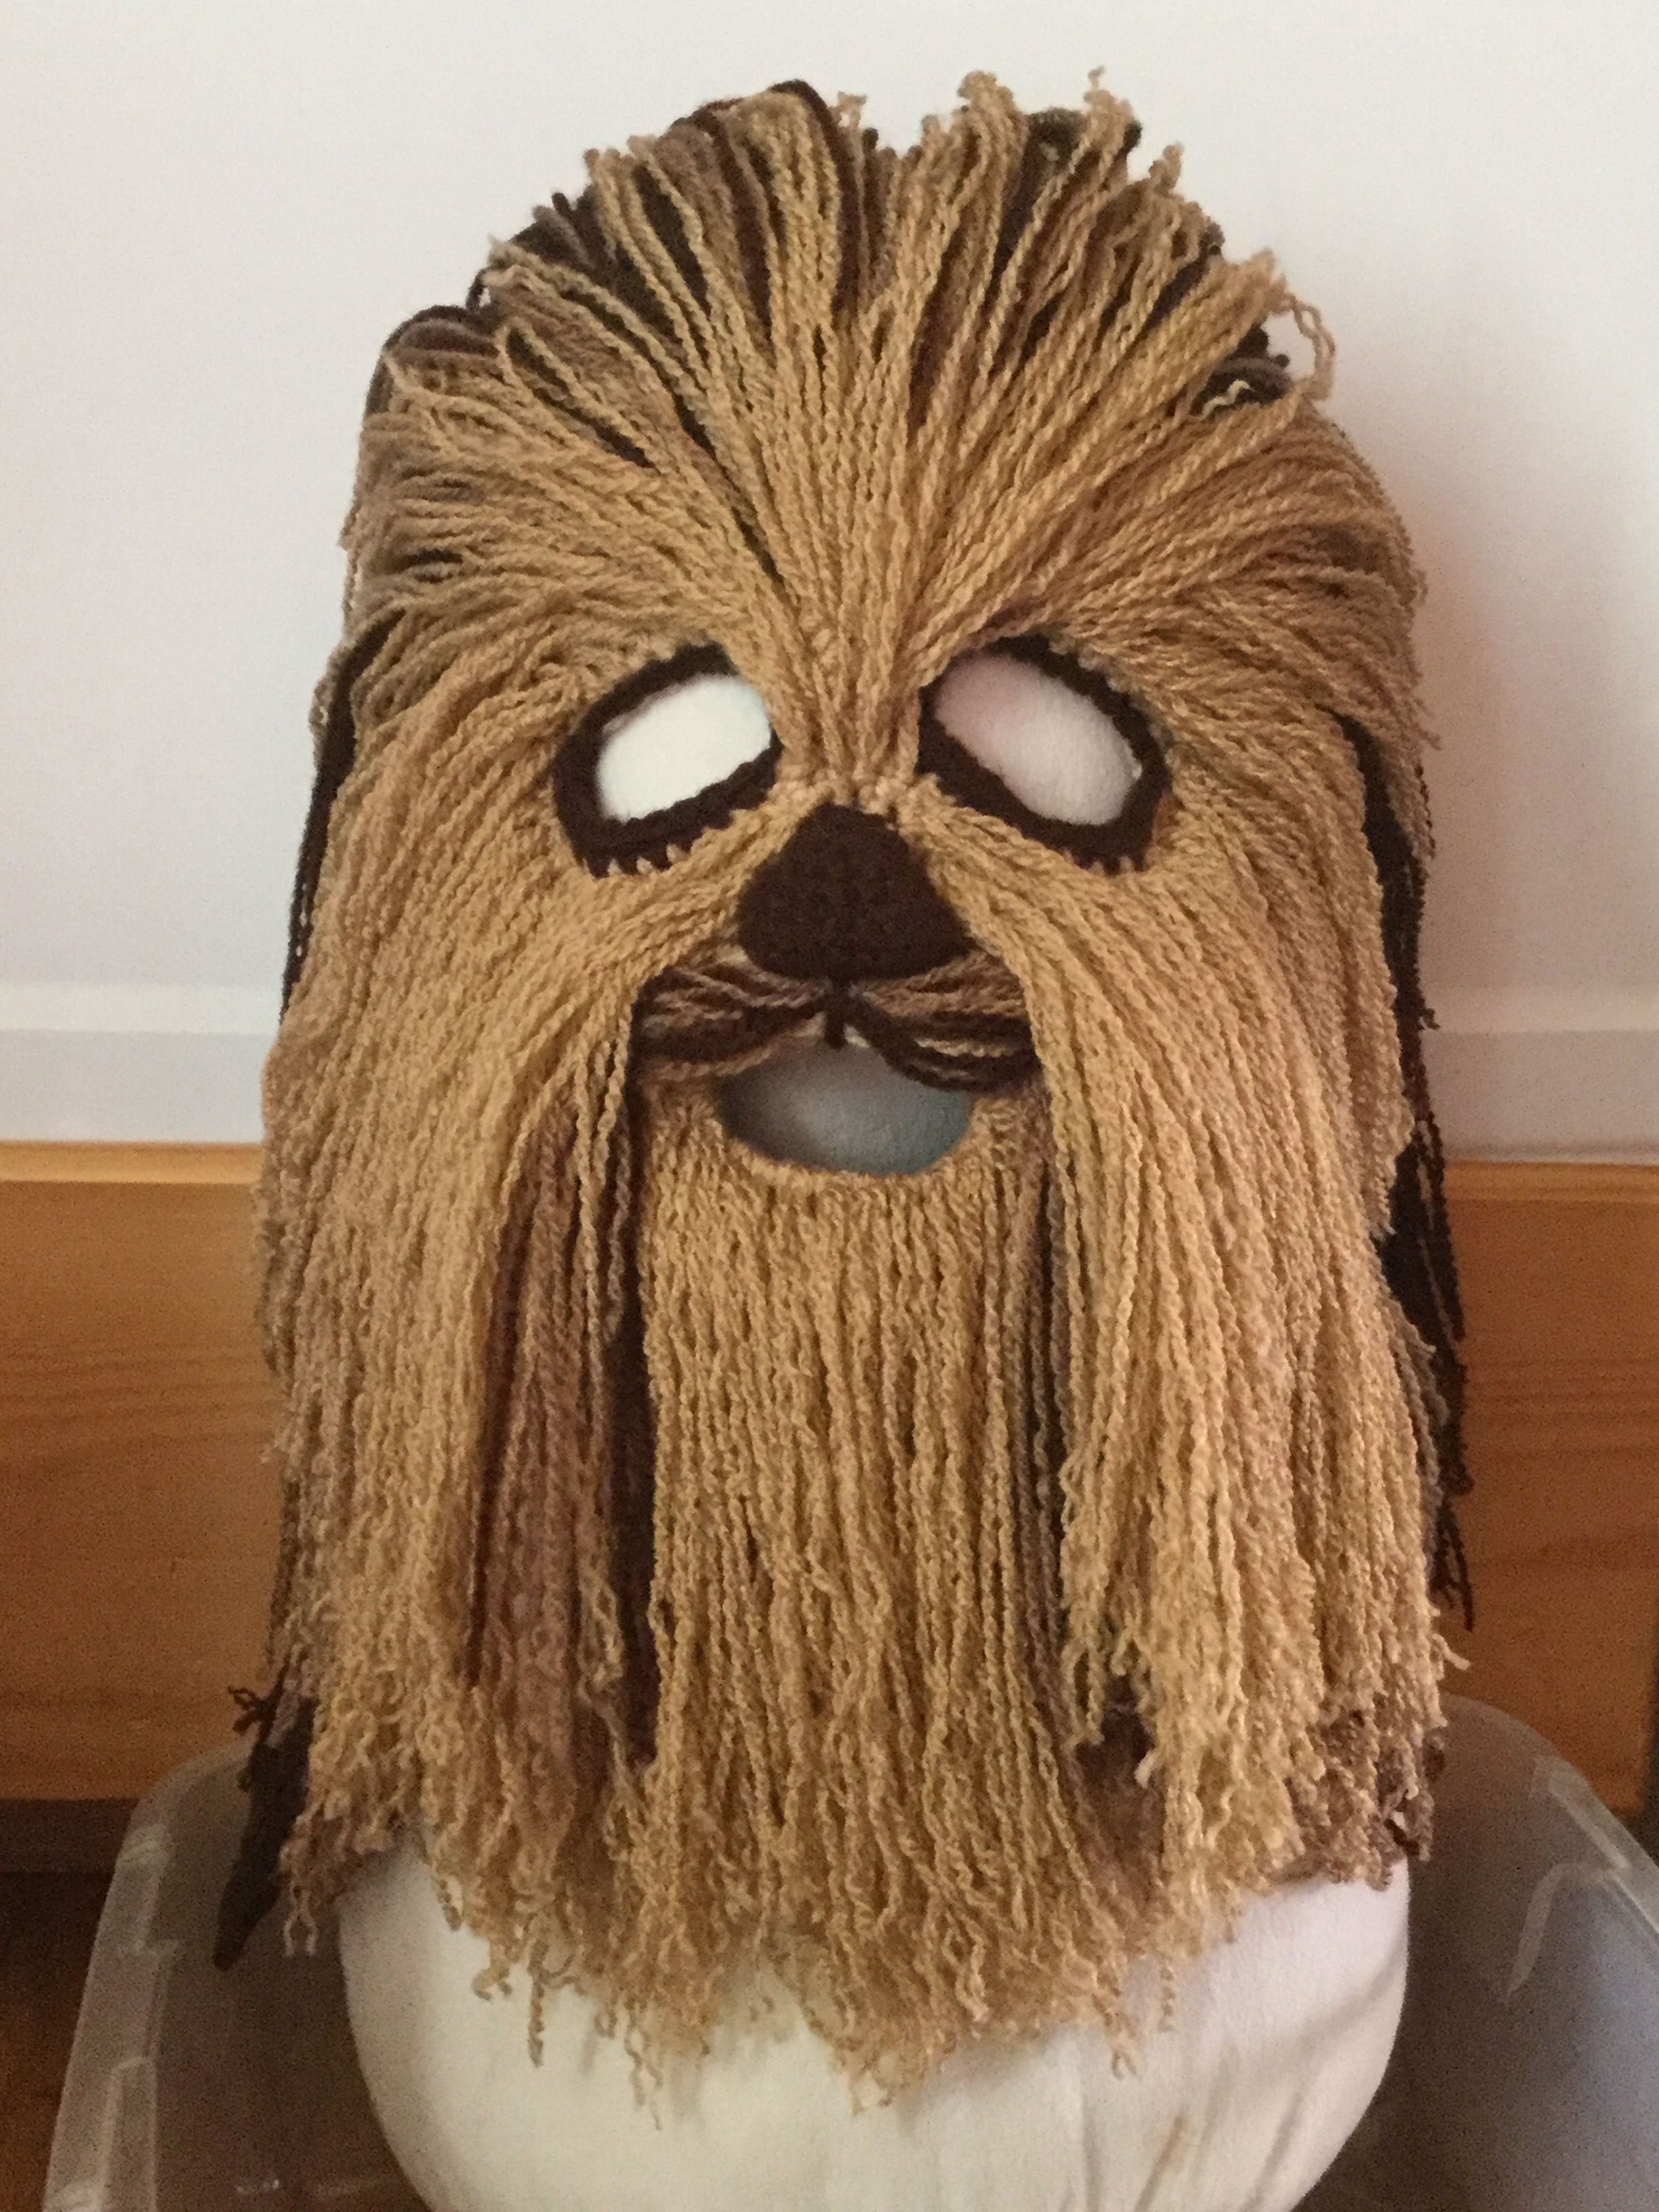 Crochet Chewbacca Mask No pattern. Crochet ski mask, added a nose ...